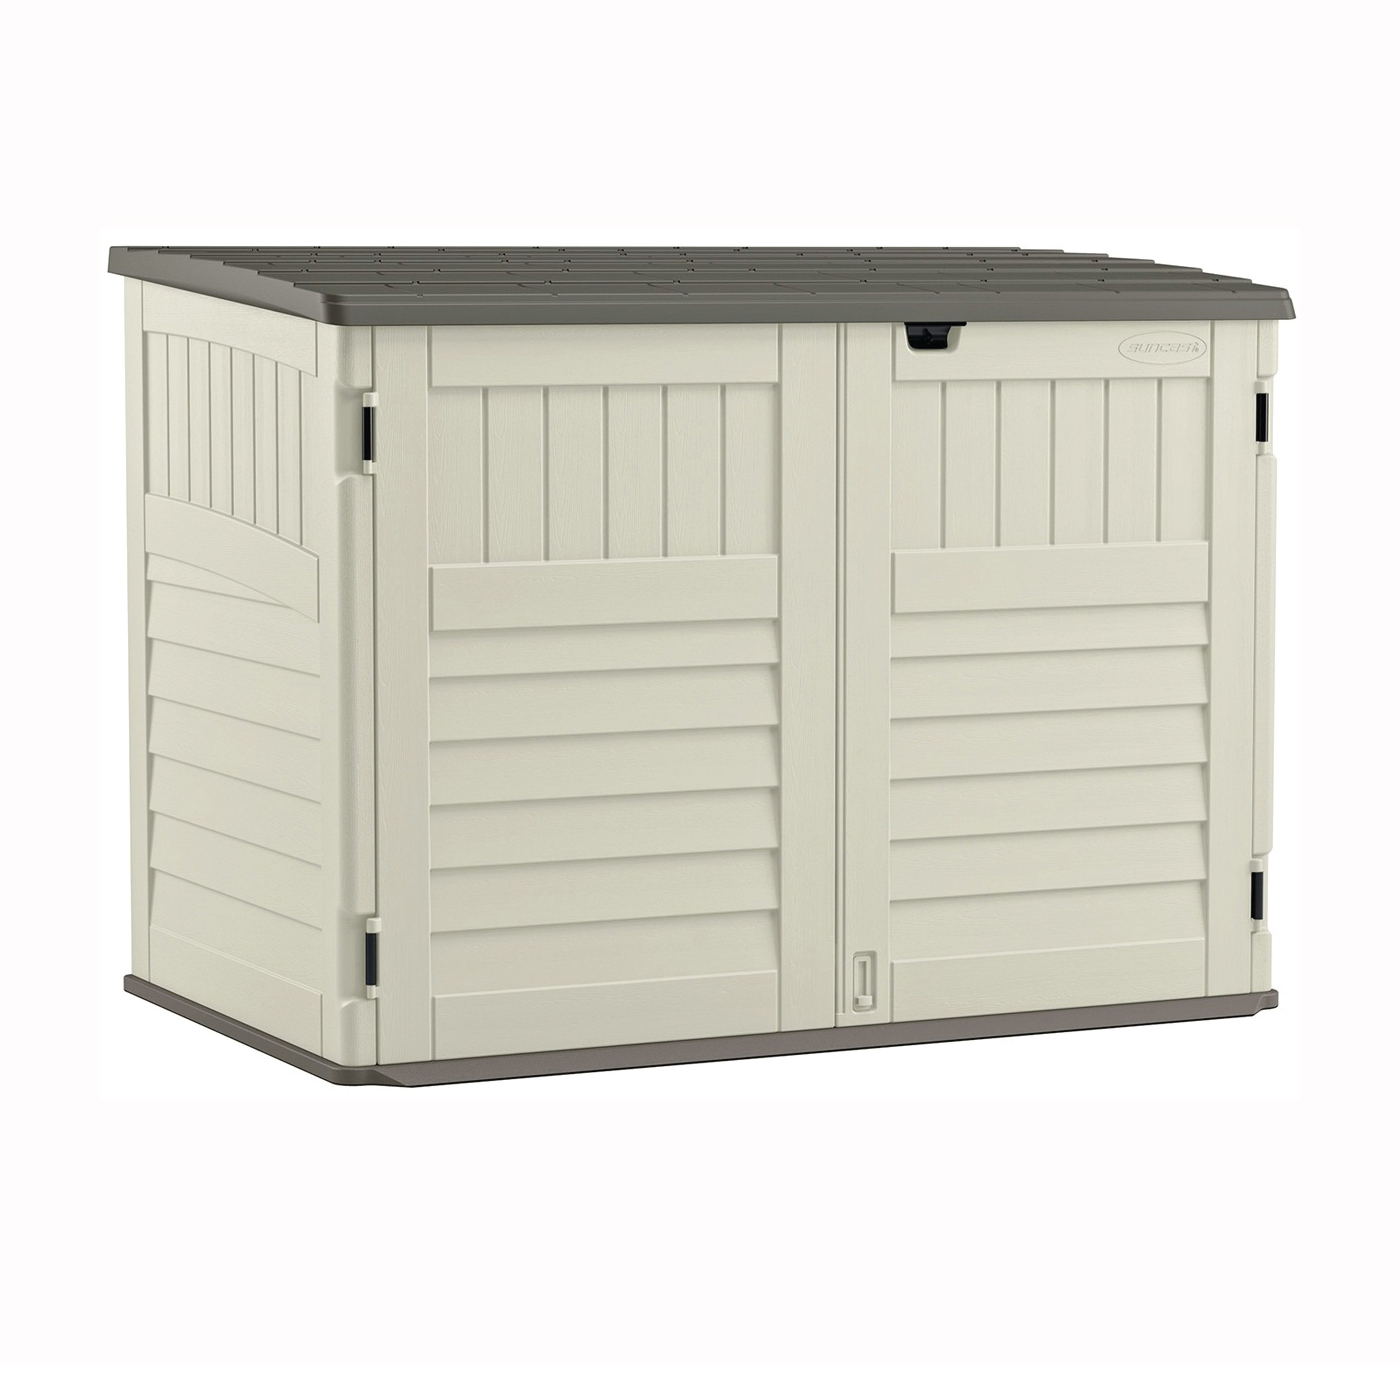 Picture of Suncast Stow-Away BMS4700 Storage Shed, 70 cu-ft Capacity, 5 ft 10-1/2 in W, 3 ft 8-1/4 in D, 4 ft 4 in H, Resin